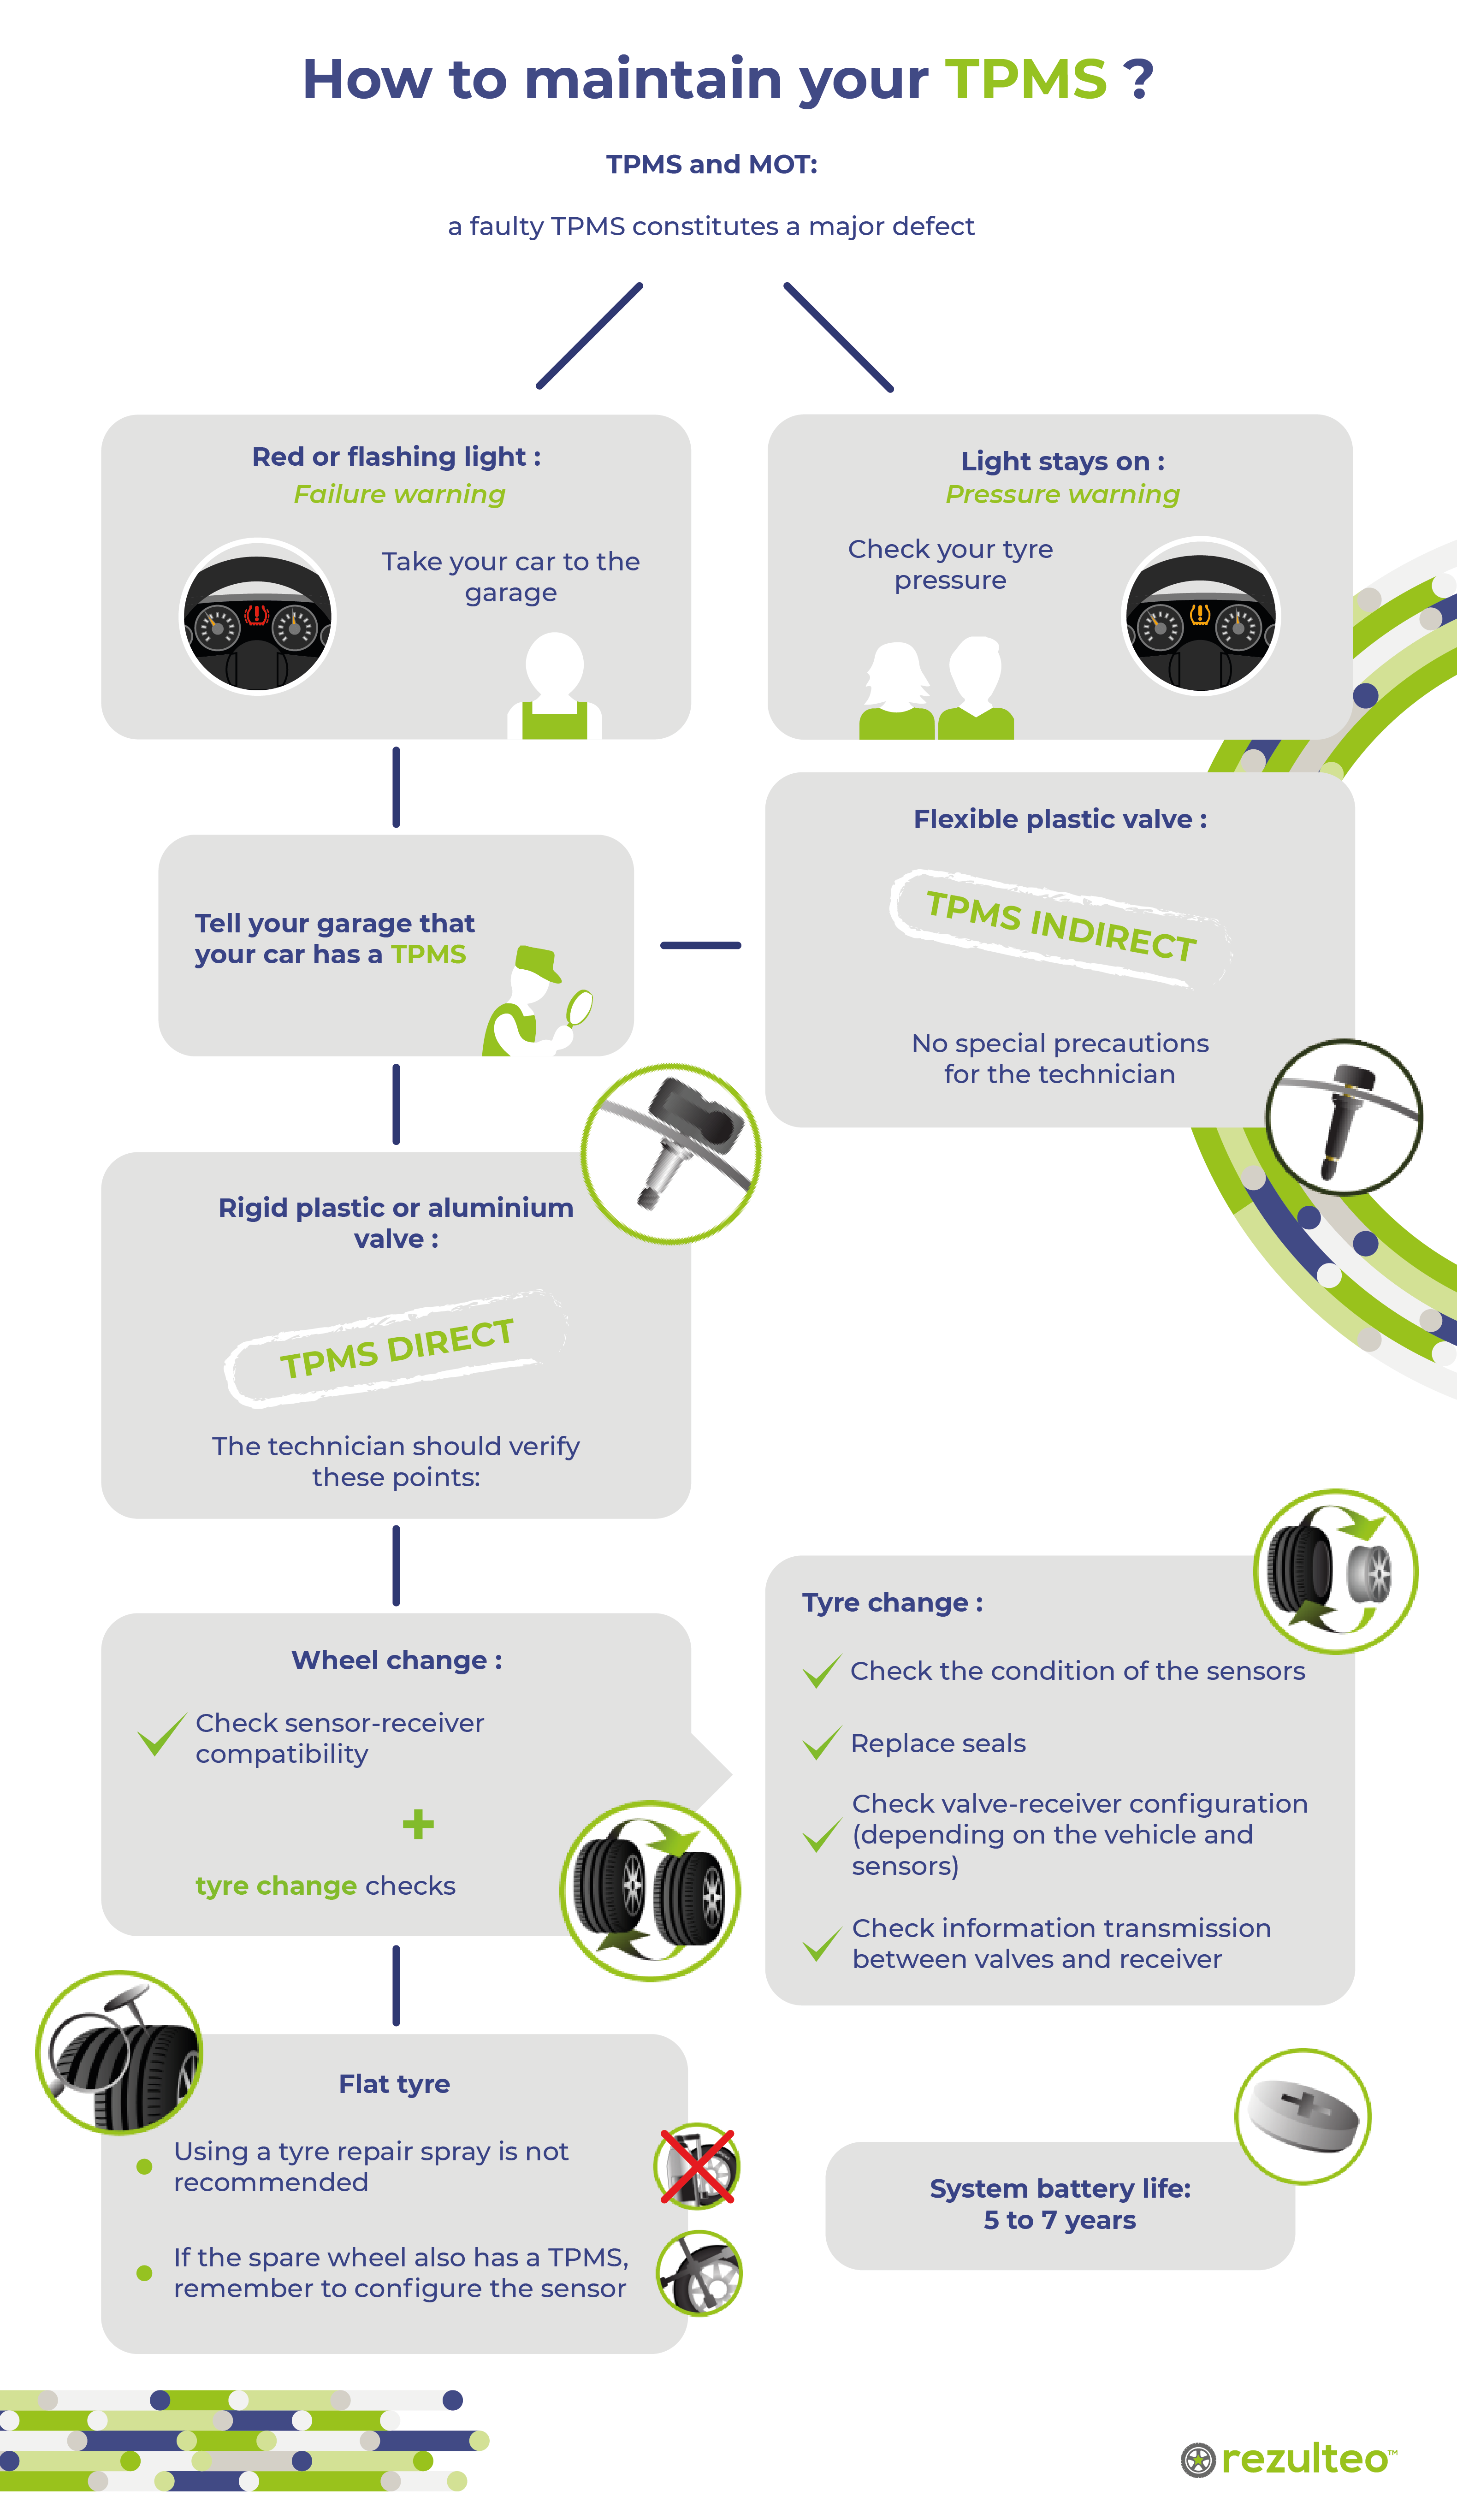 How to maintain your TPMS